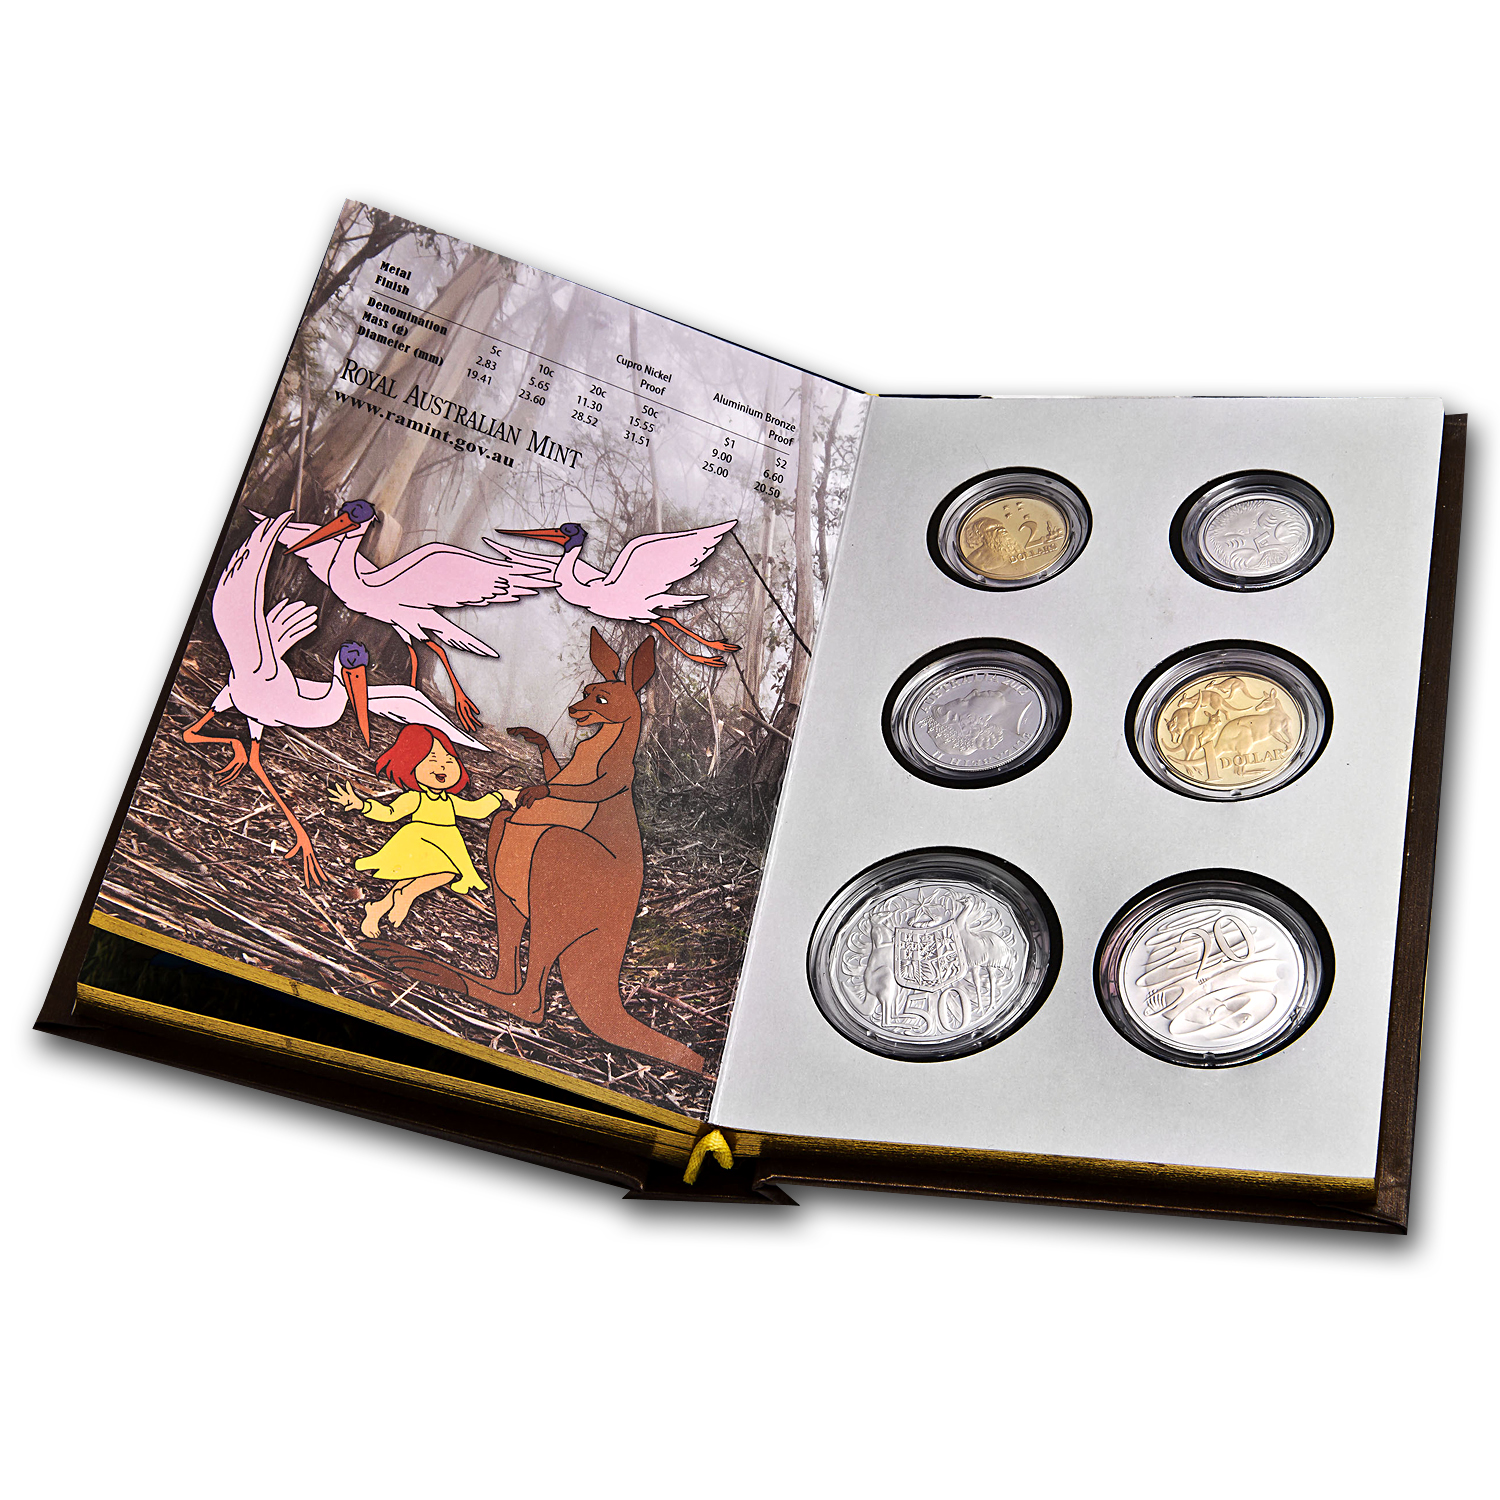 2012 Australia 6-Coin Dot & the Kangaroo Baby Proof Set